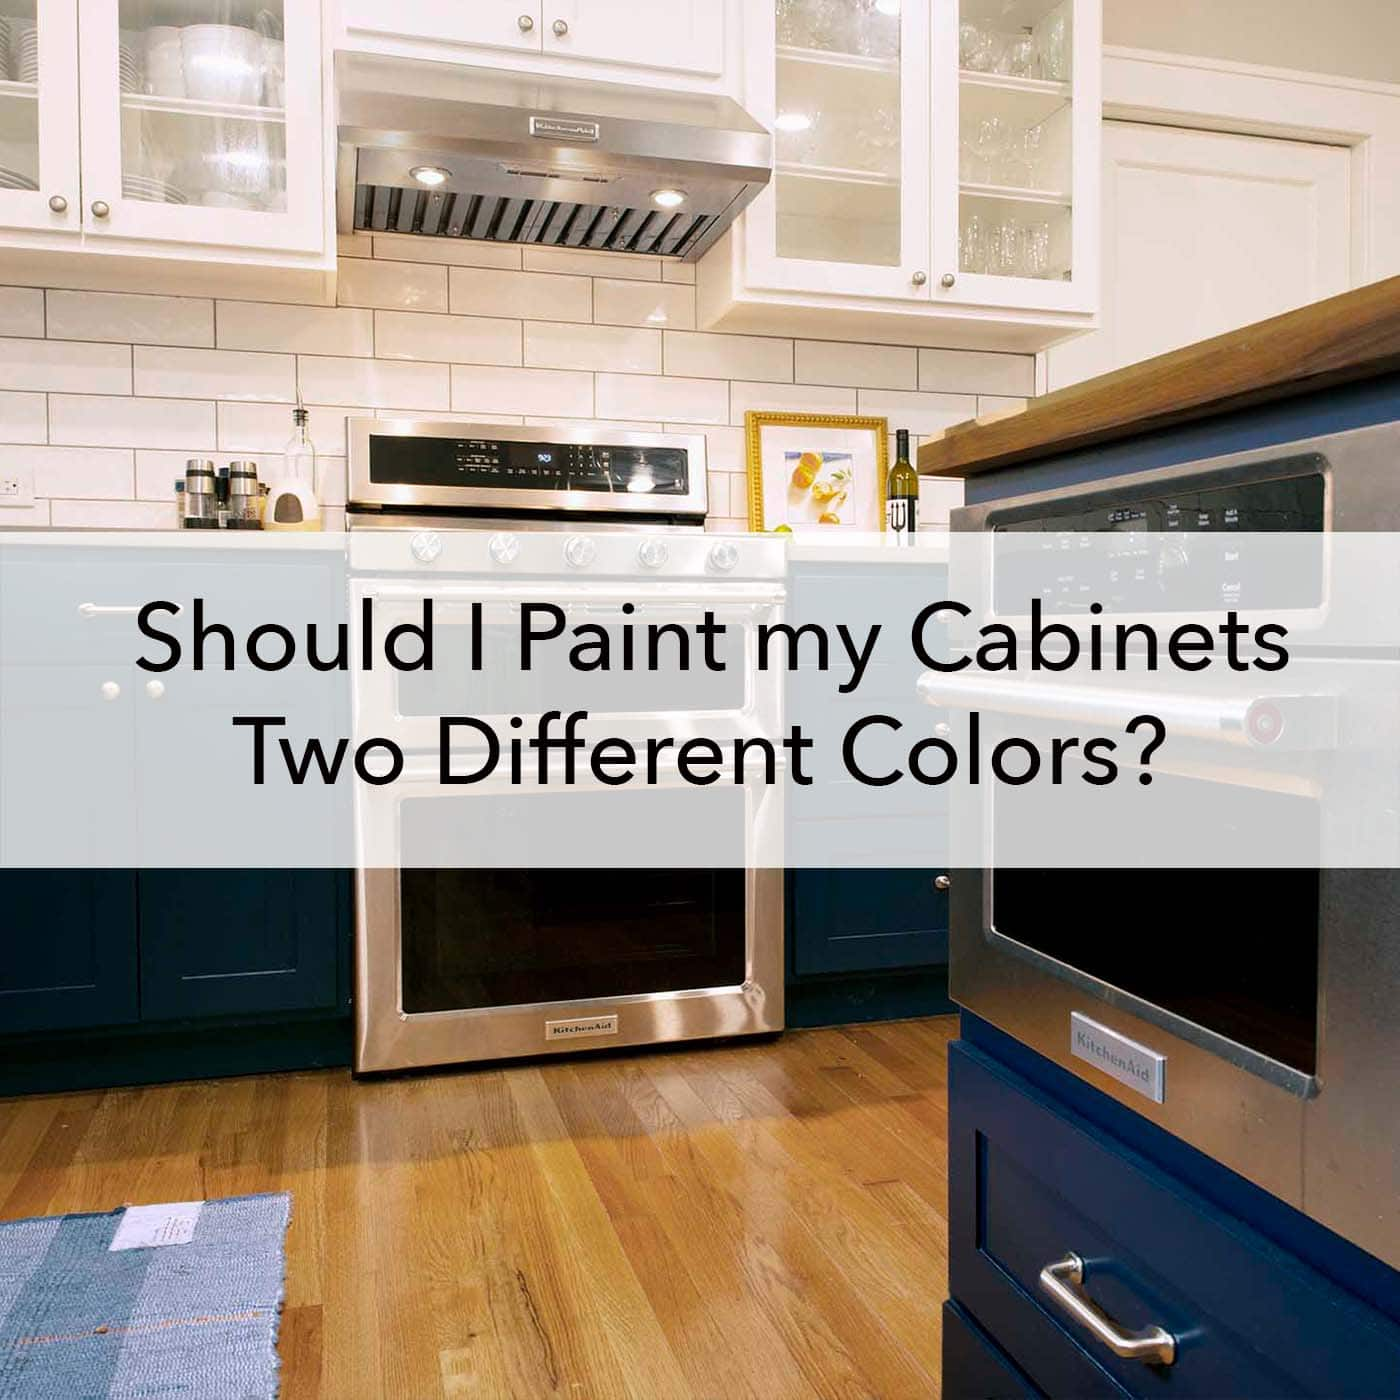 Should I Paint my Cabinets Two Different Colors, blog